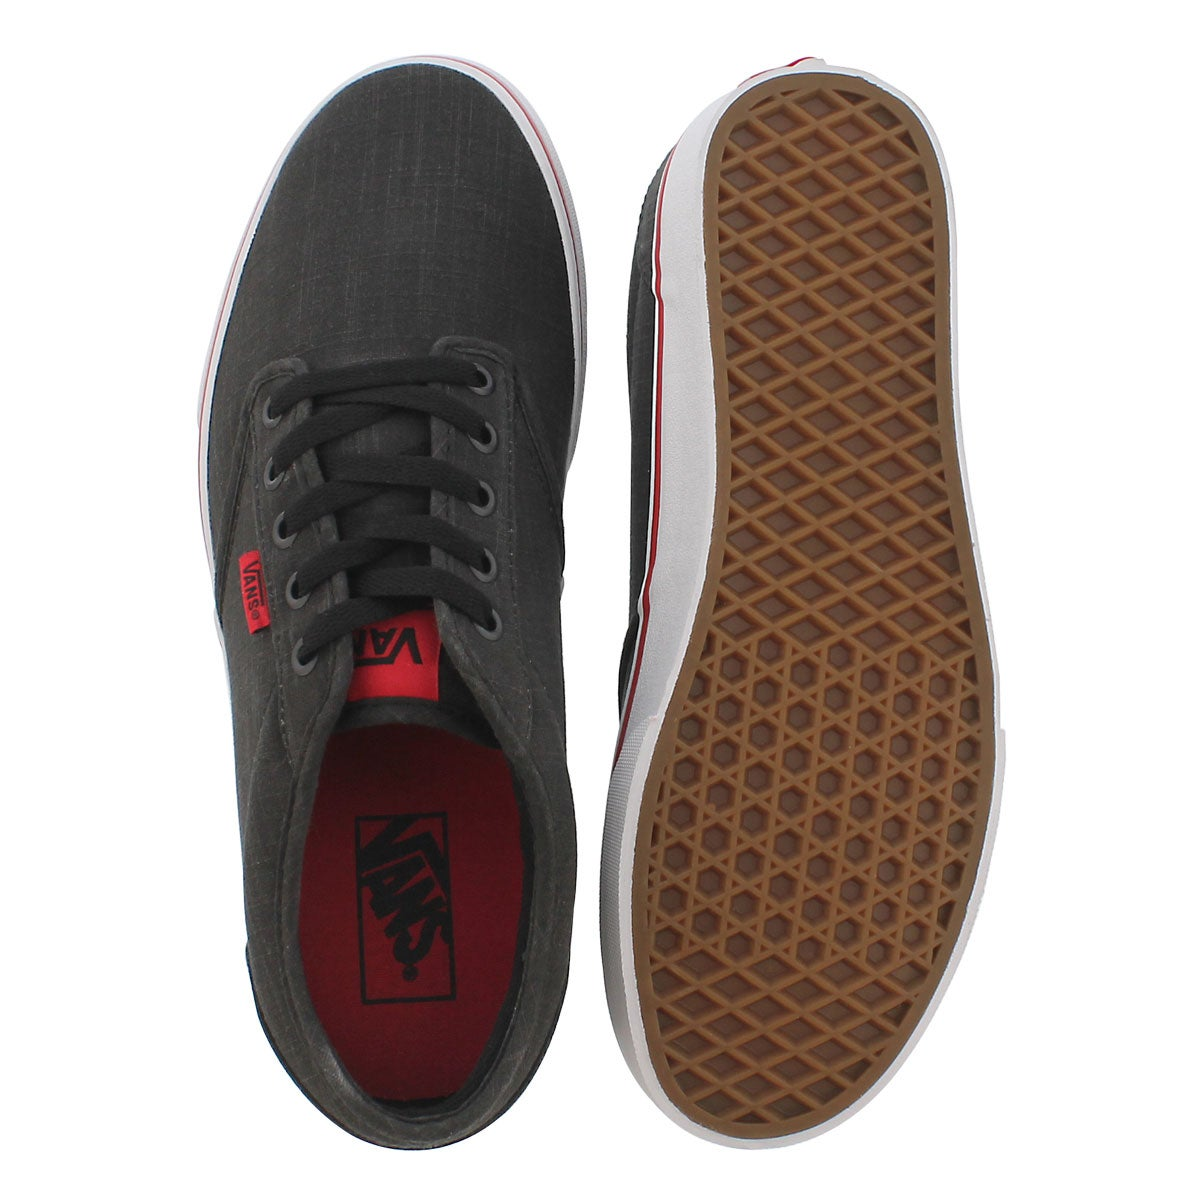 Mns Atwood blk/red laceup sneaker